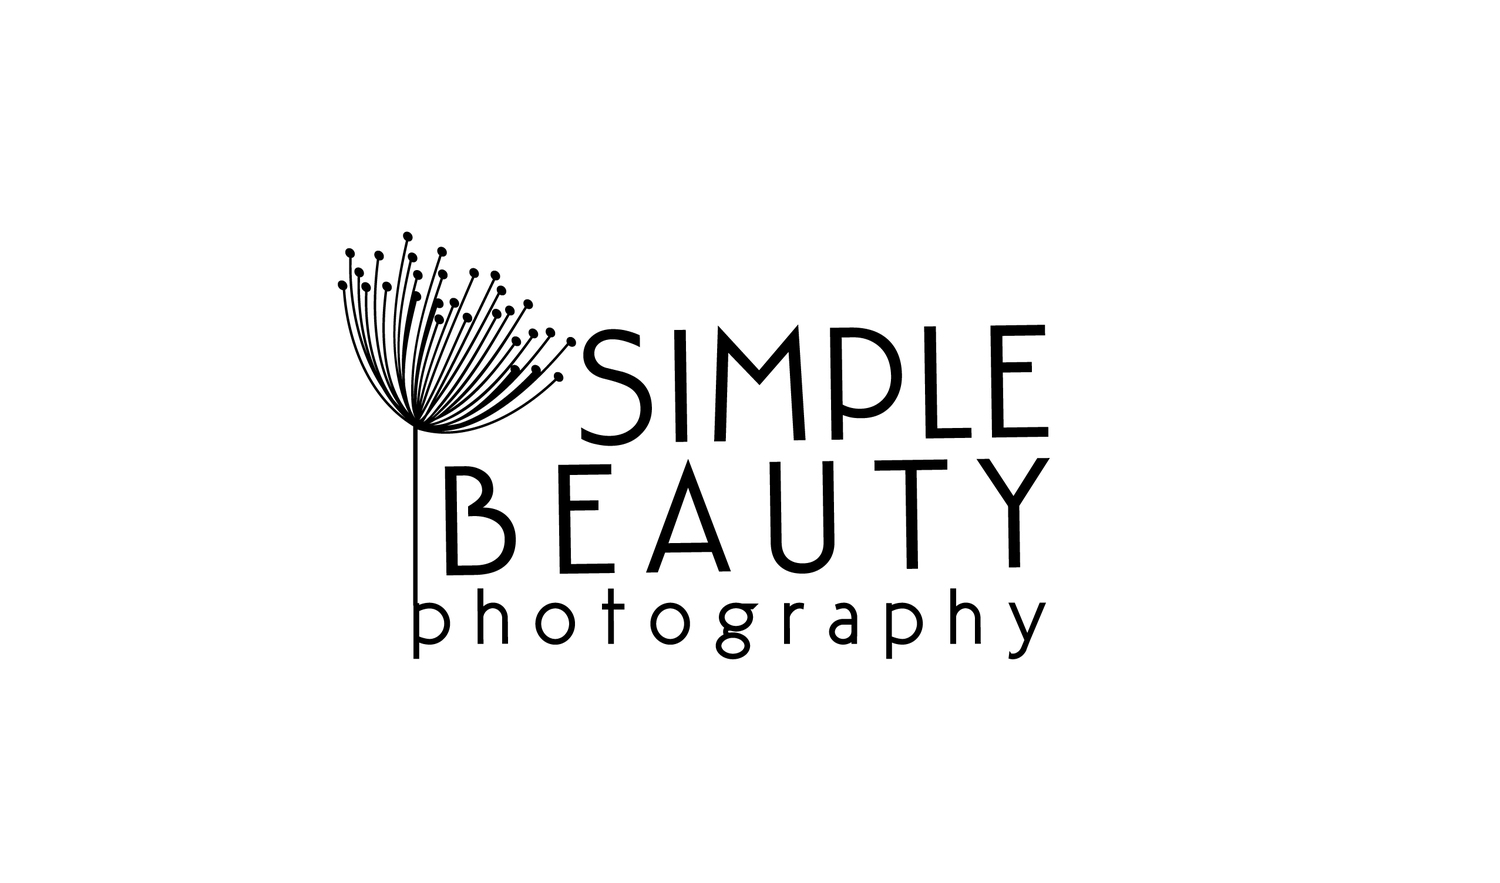 Simple Beauty Photography